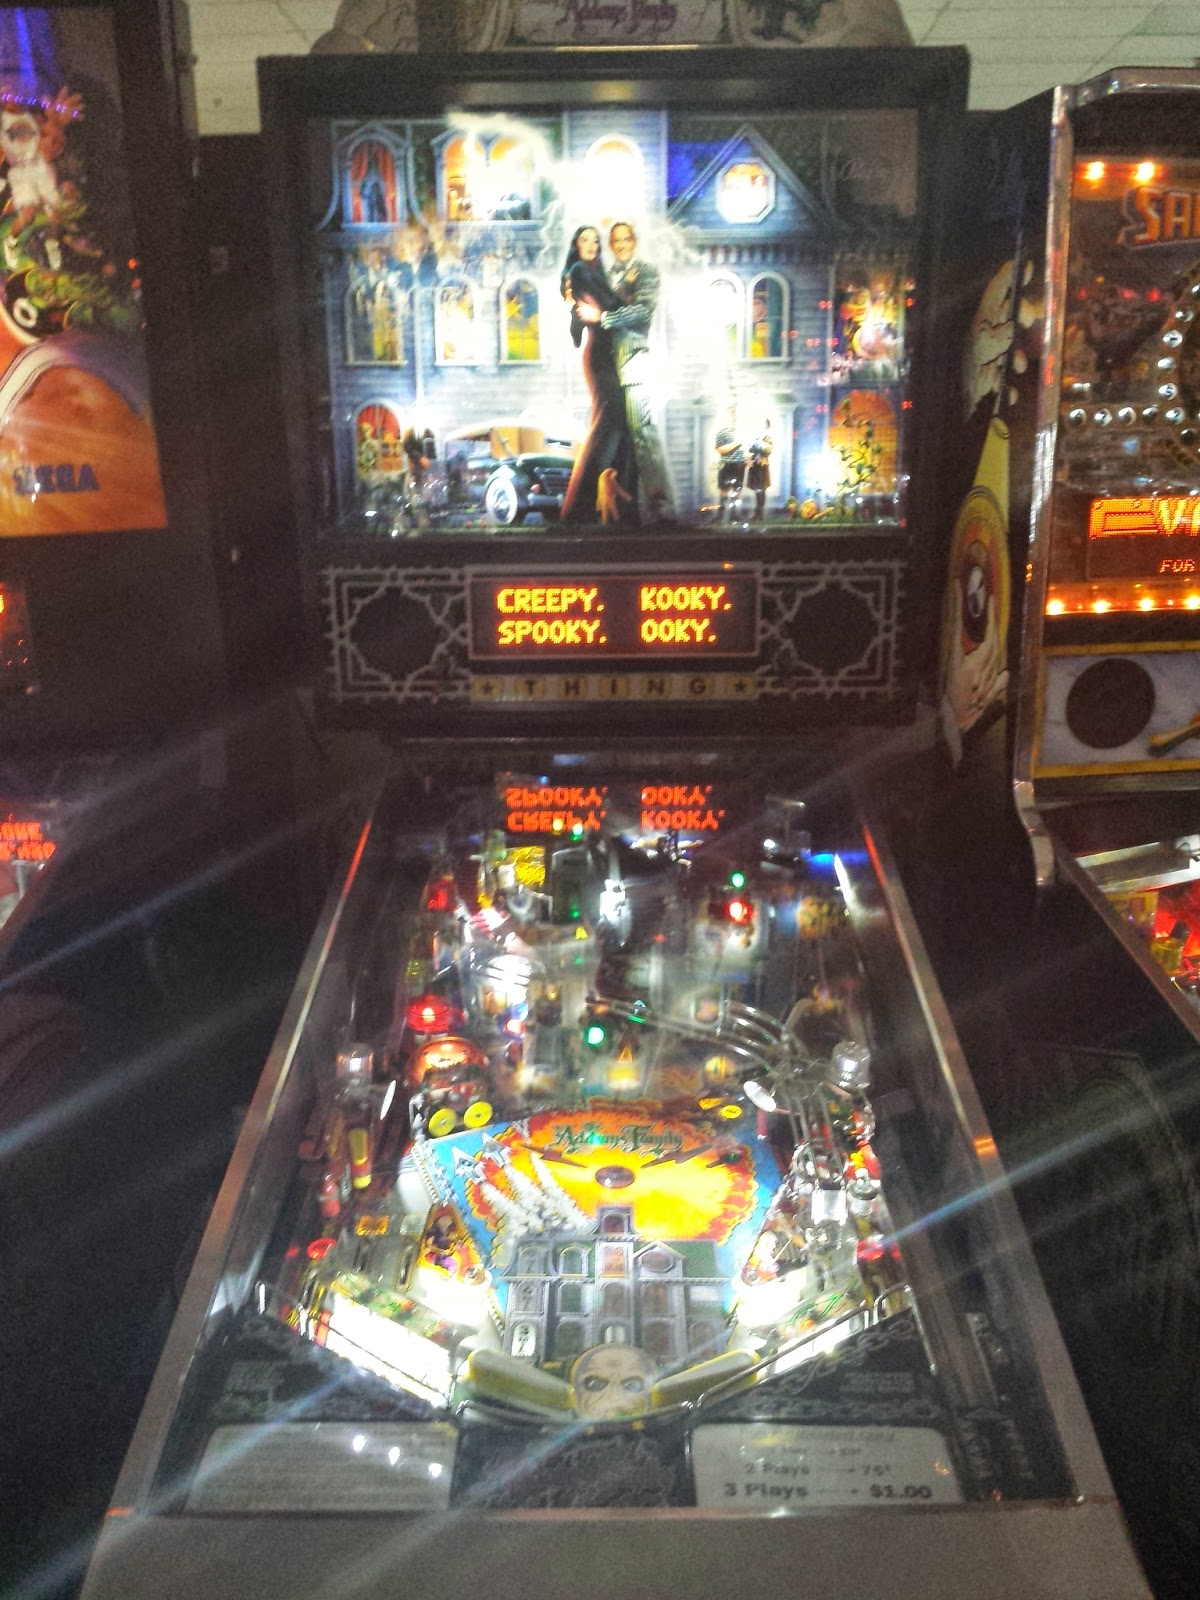 One of the best pinball machines, The Addams Family